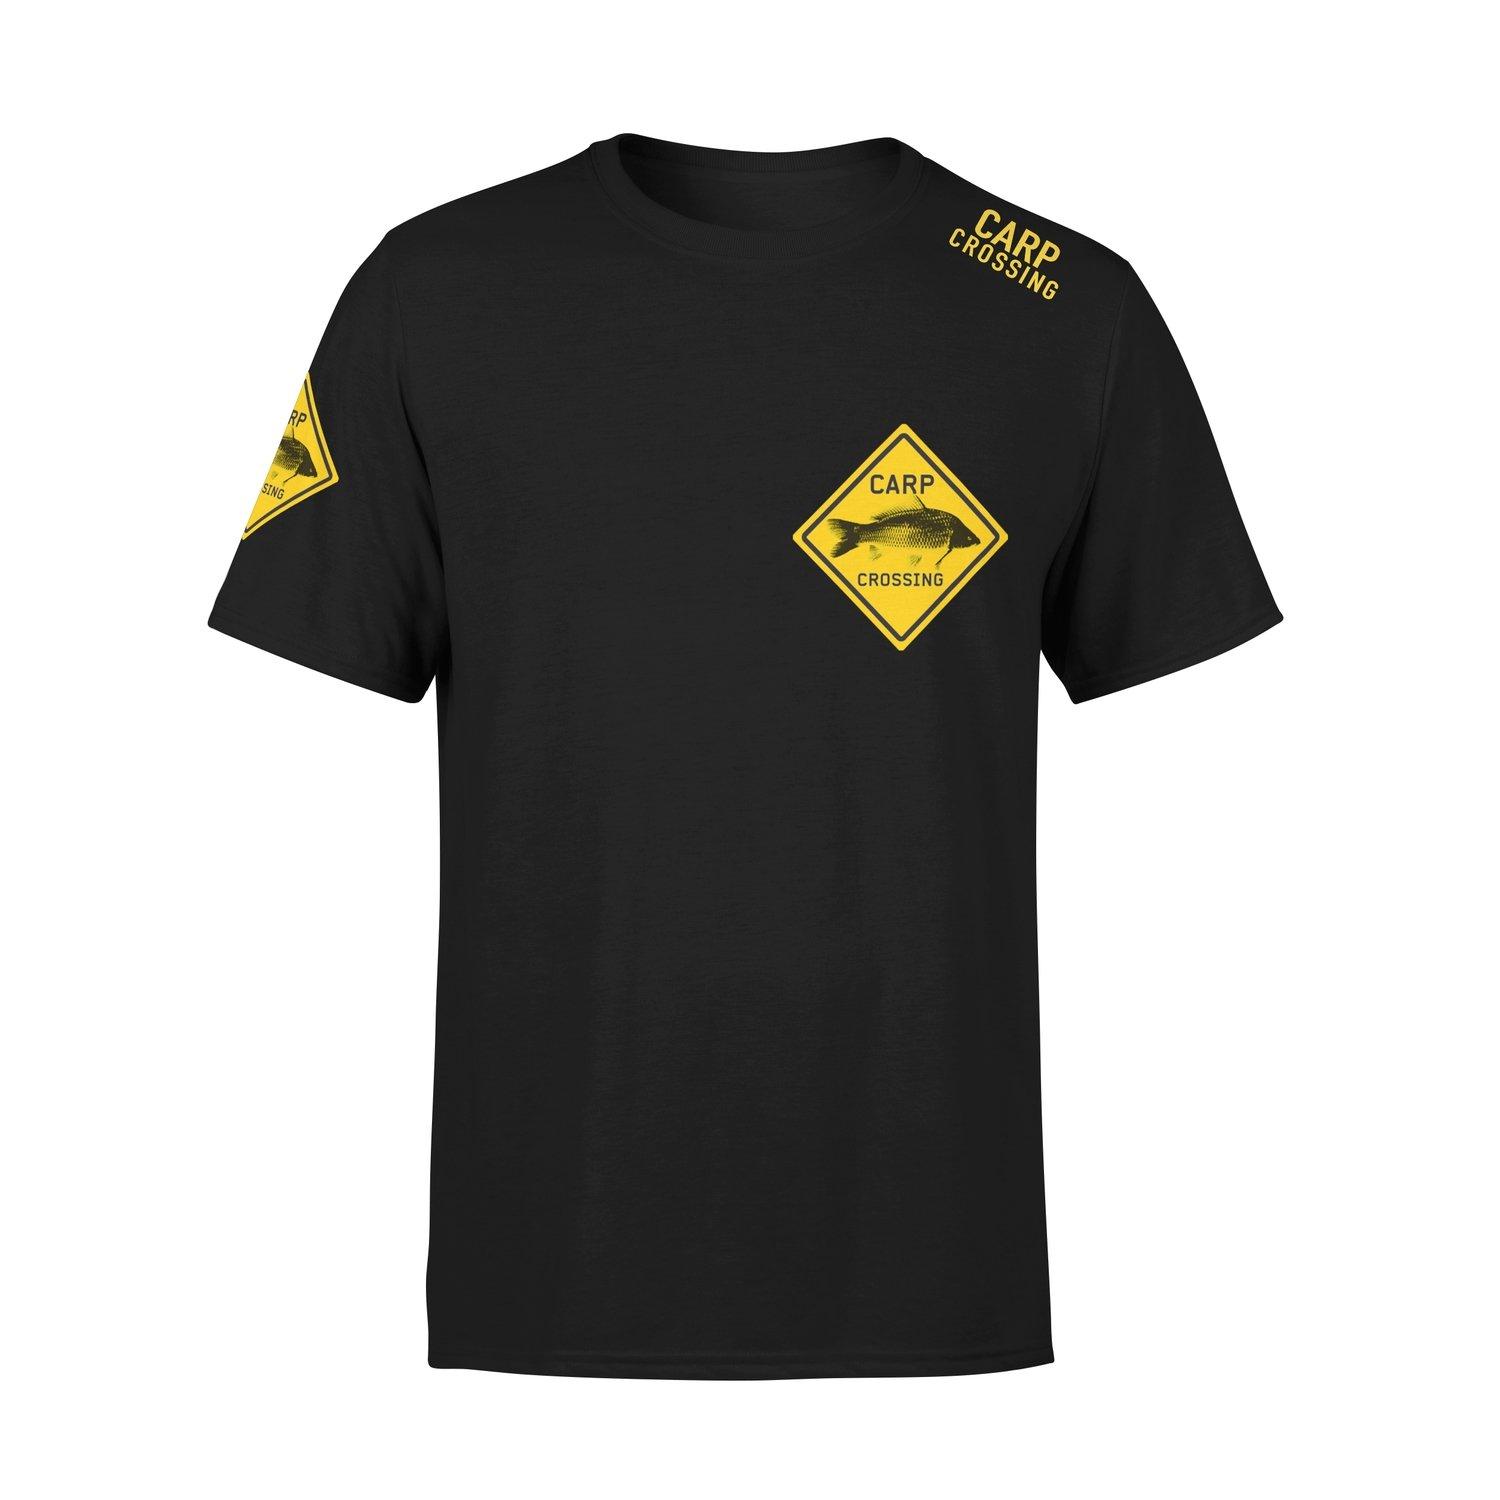 Carpcrossing Classic Carp T-shirt Black Kids